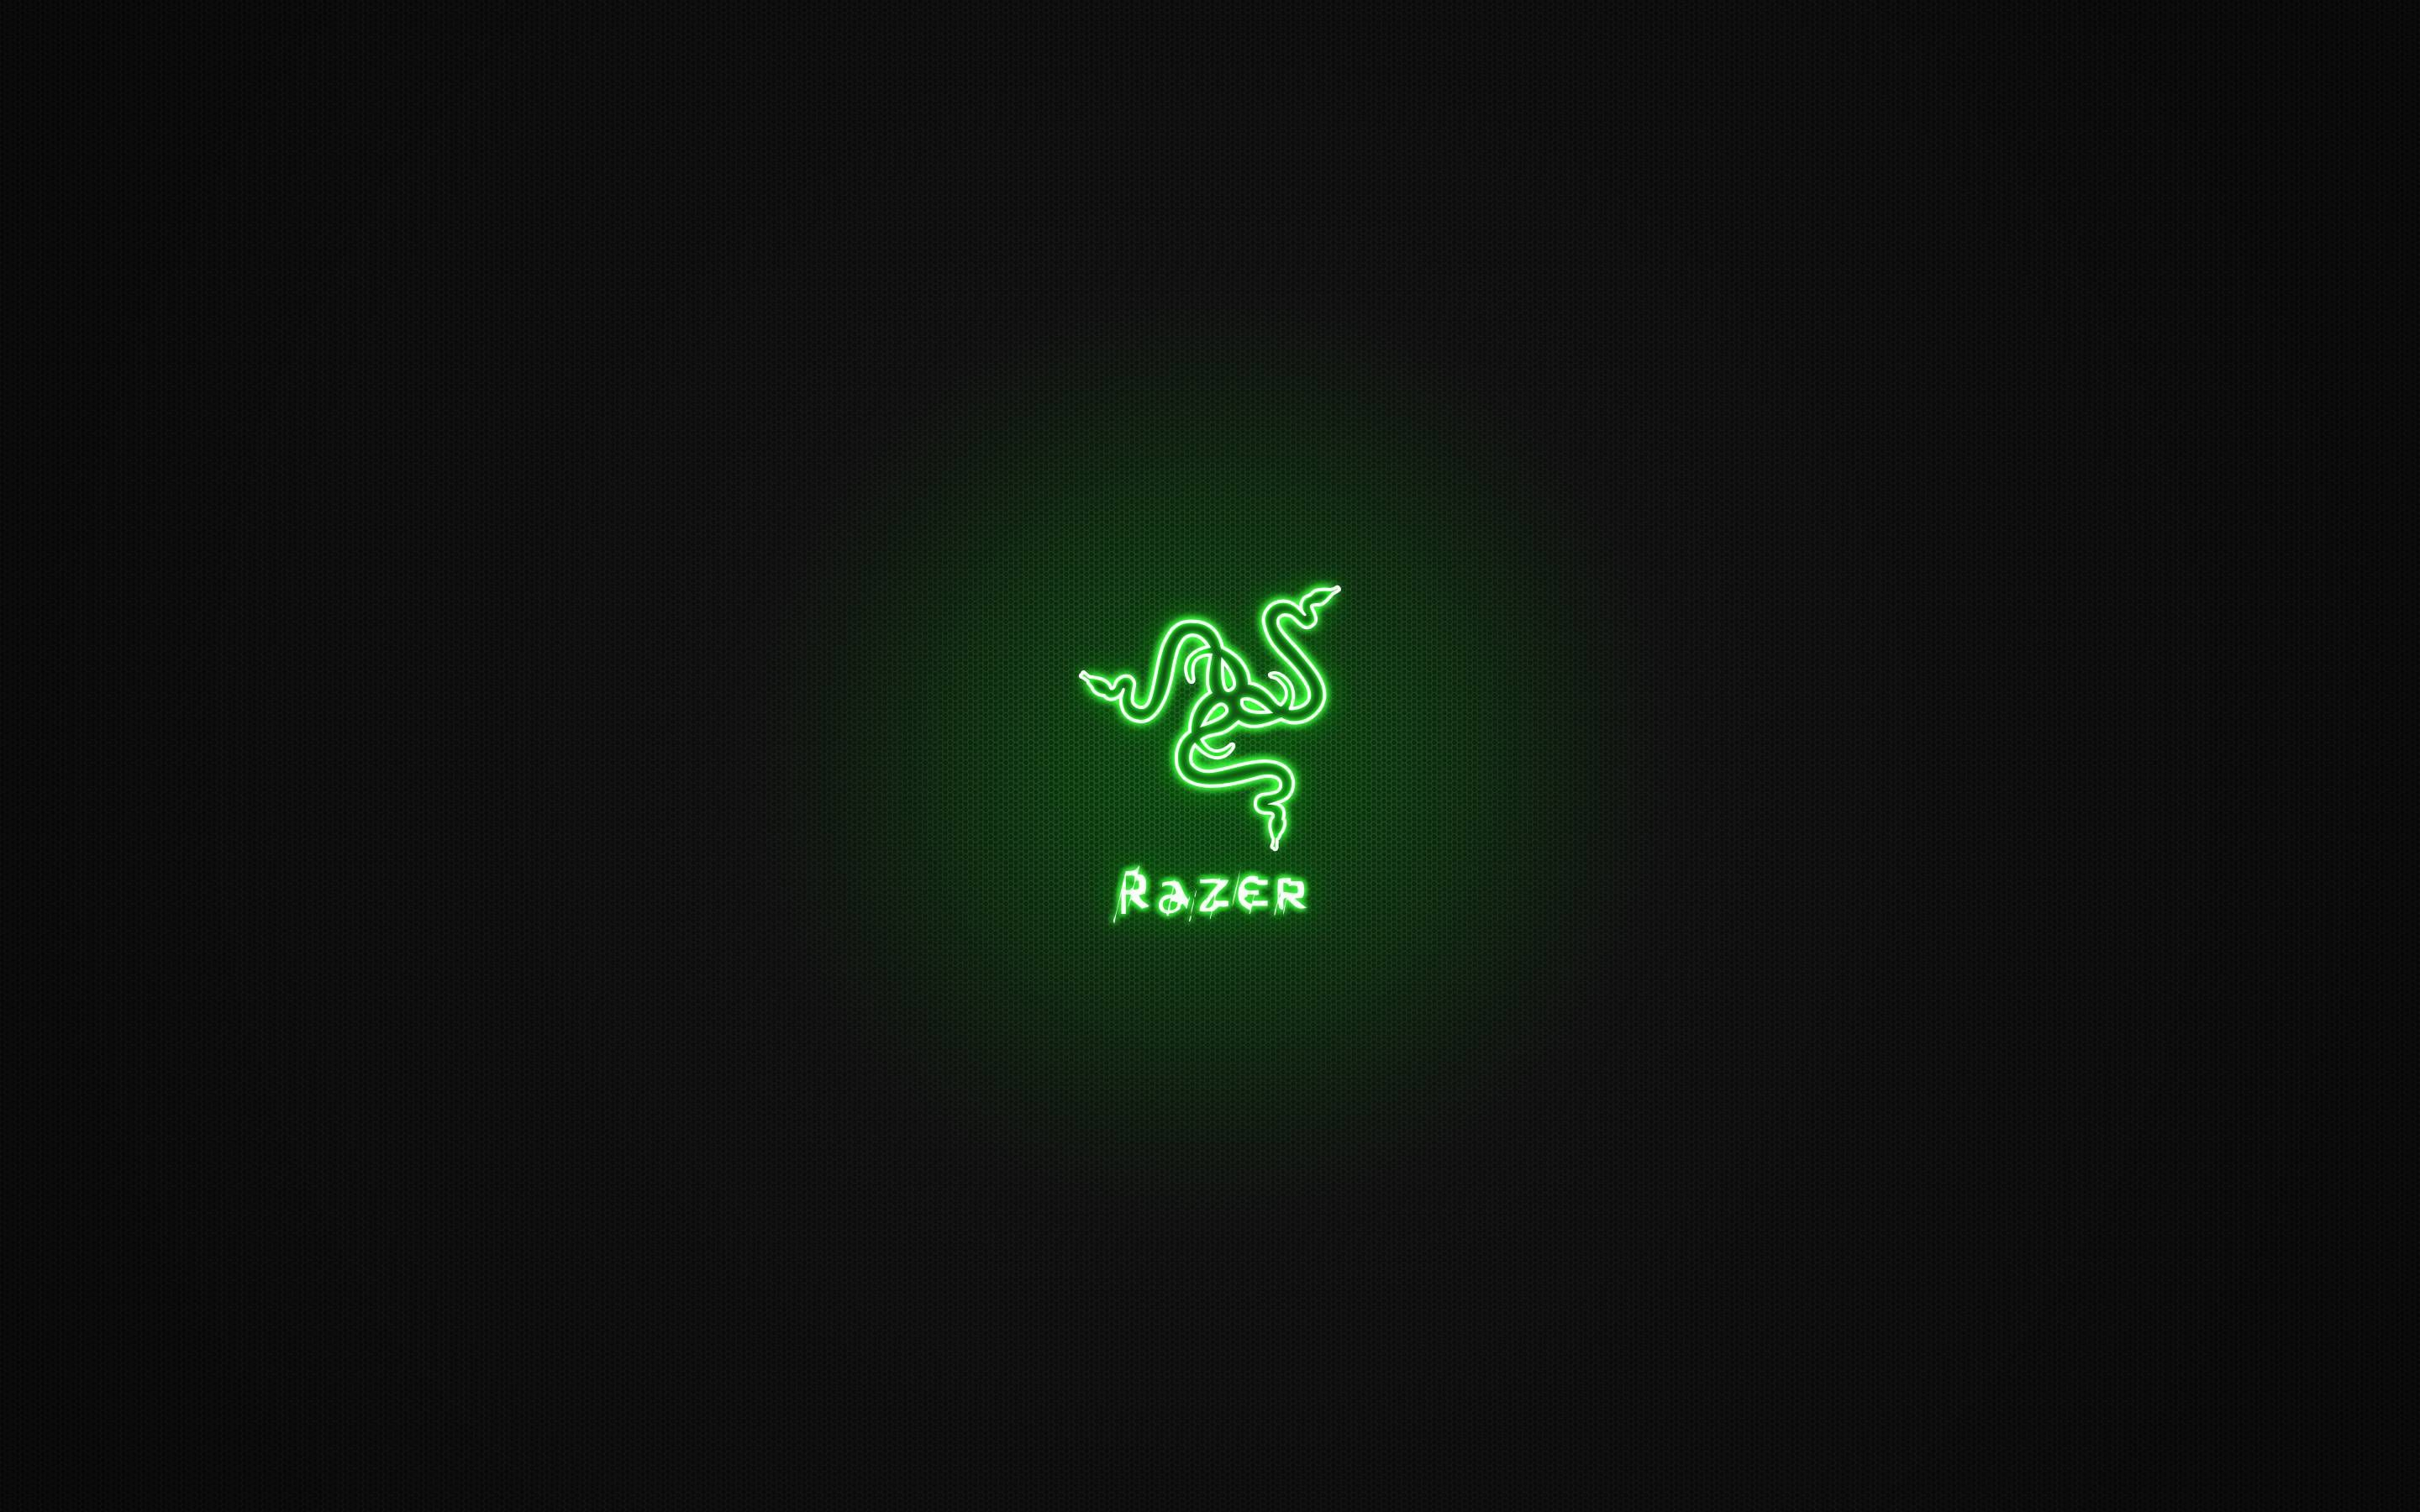 Razer Gaming Wallpaper In 2020 With Images Razer Desktop Wallpaper Gaming Wallpapers